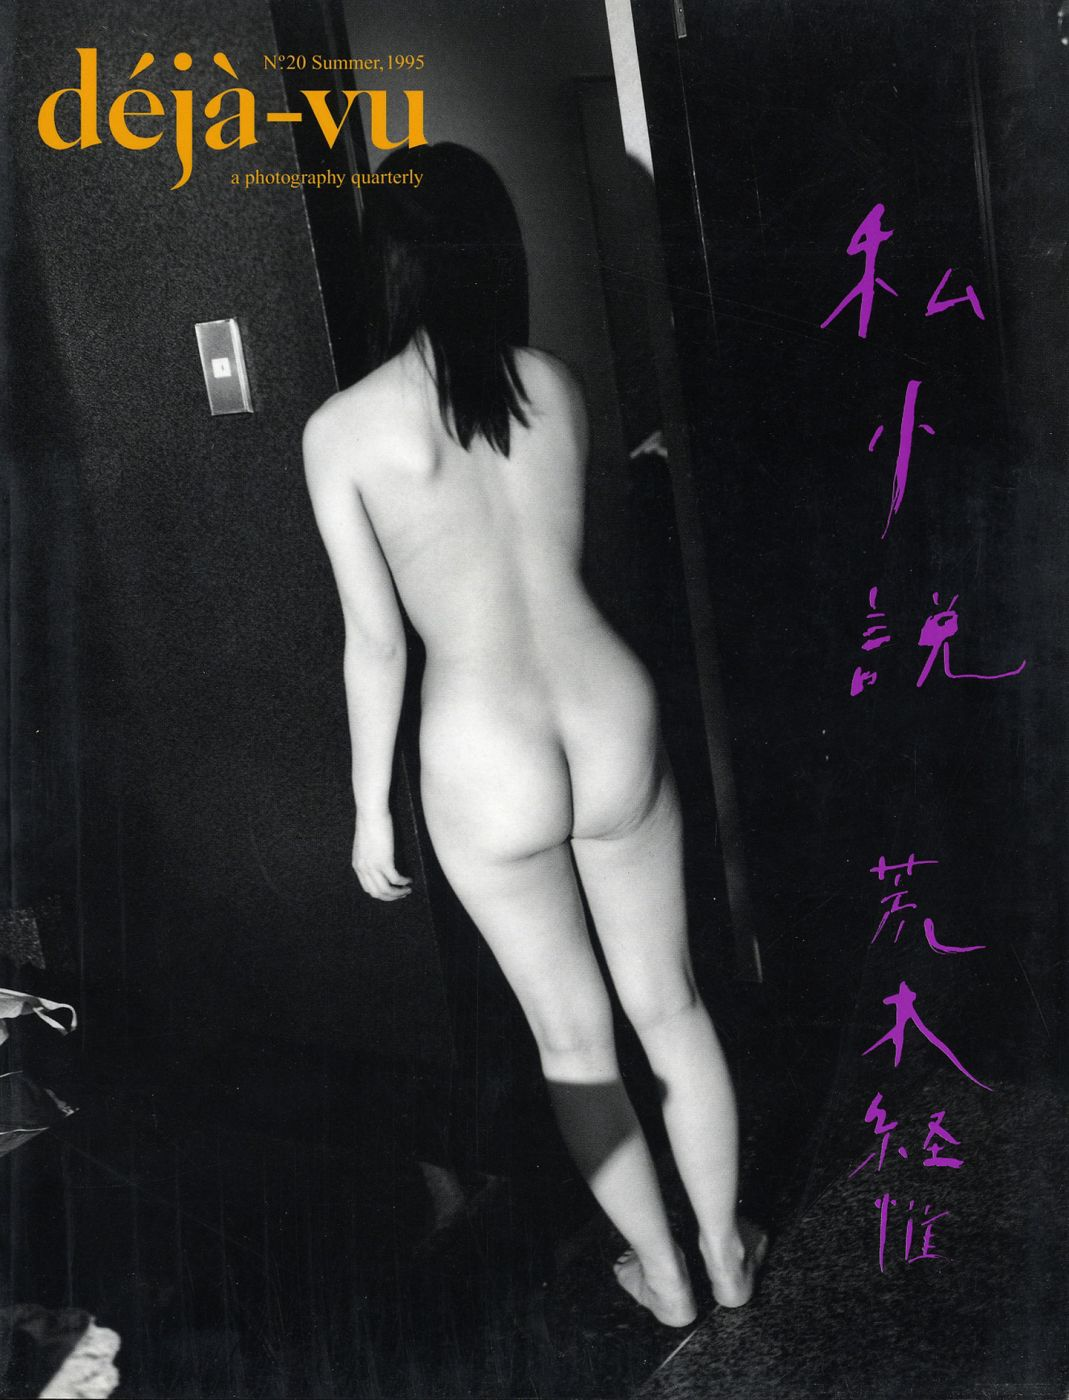 Déjà Vu No. 20: Nobuyoshi Araki and the 'I Novel' (a photography quarterly)